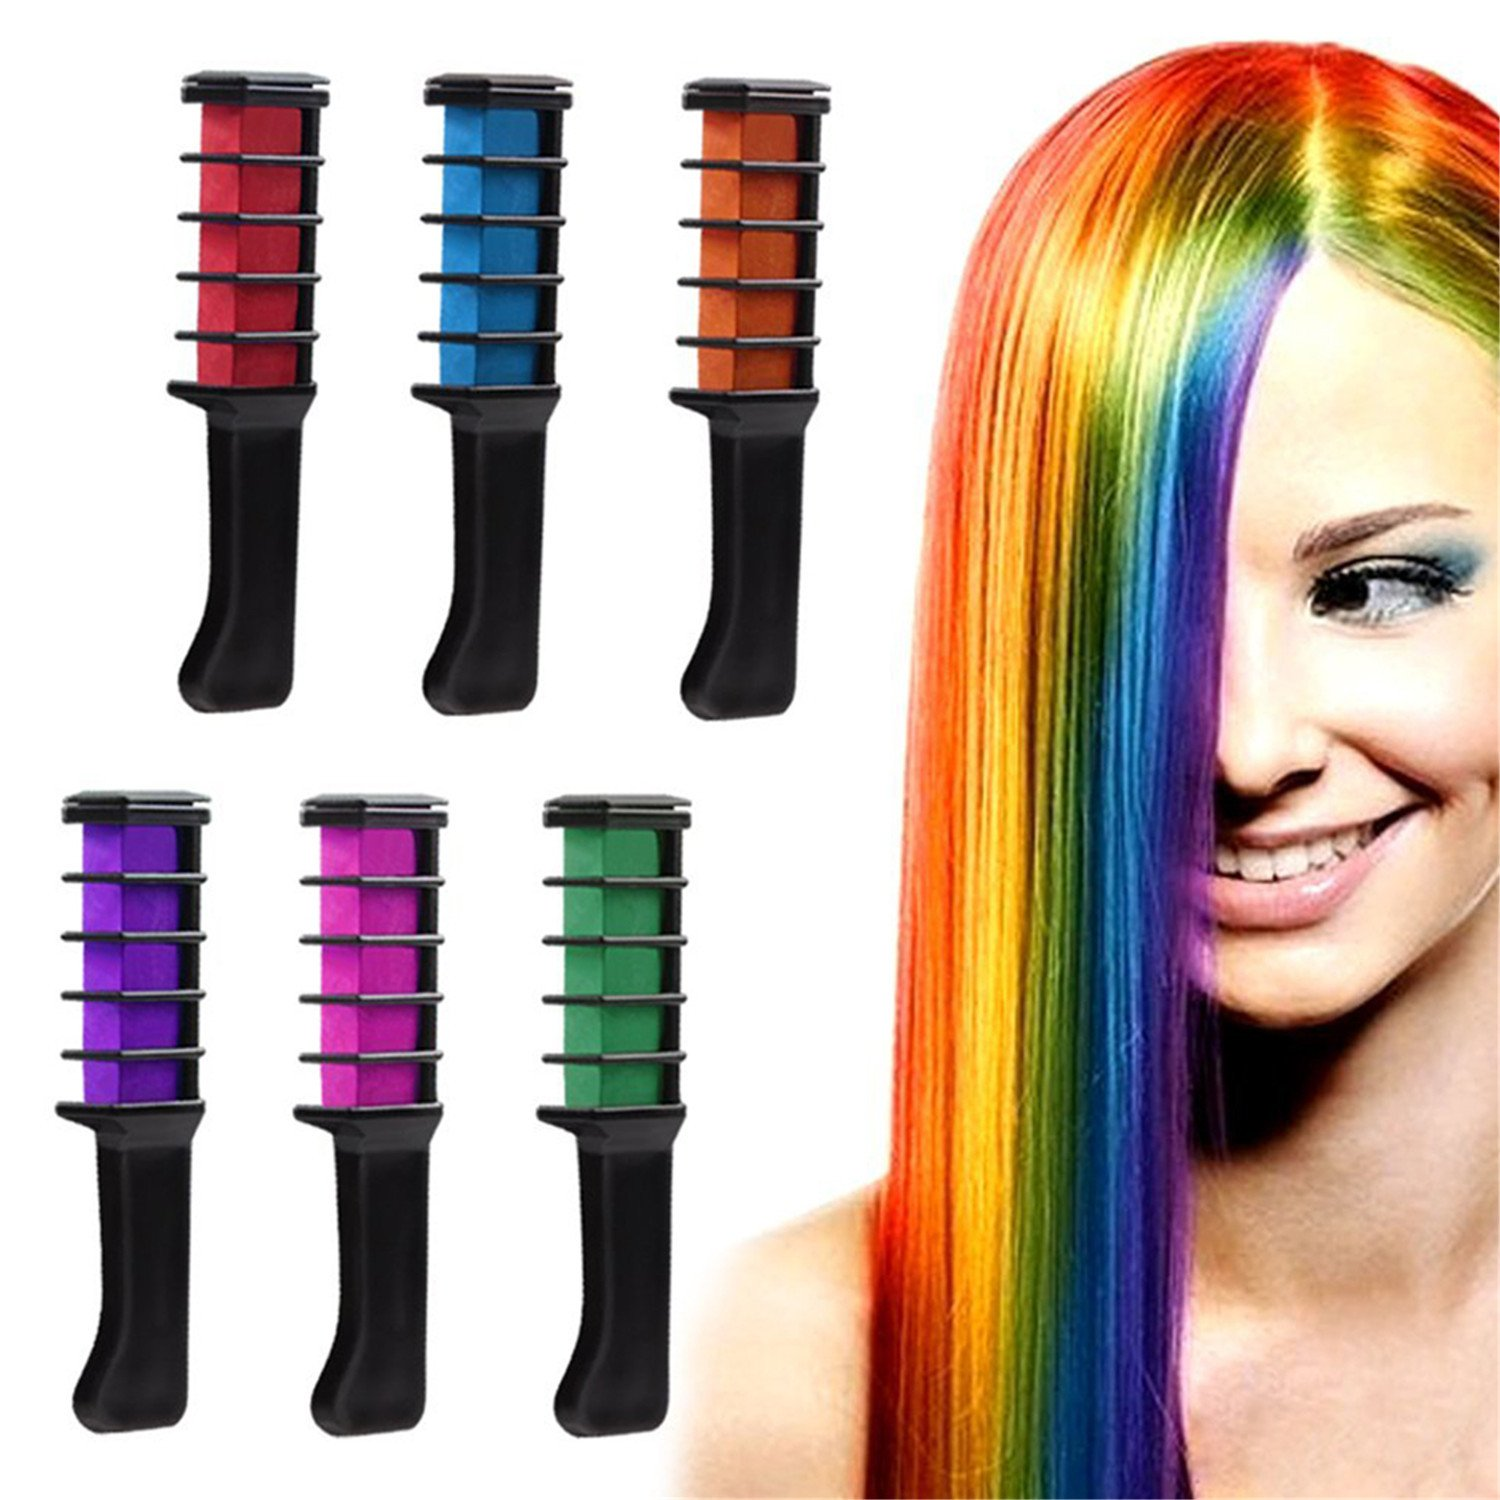 HMILYDYK Temporary Hair Chalk Washable Hair Color Comb Non-Toxic Washable Hair Dye DIY Party Fans Cosplay Kits for Girls Birthday Christmas Gift GUCHALKCOMB-B-6PCS